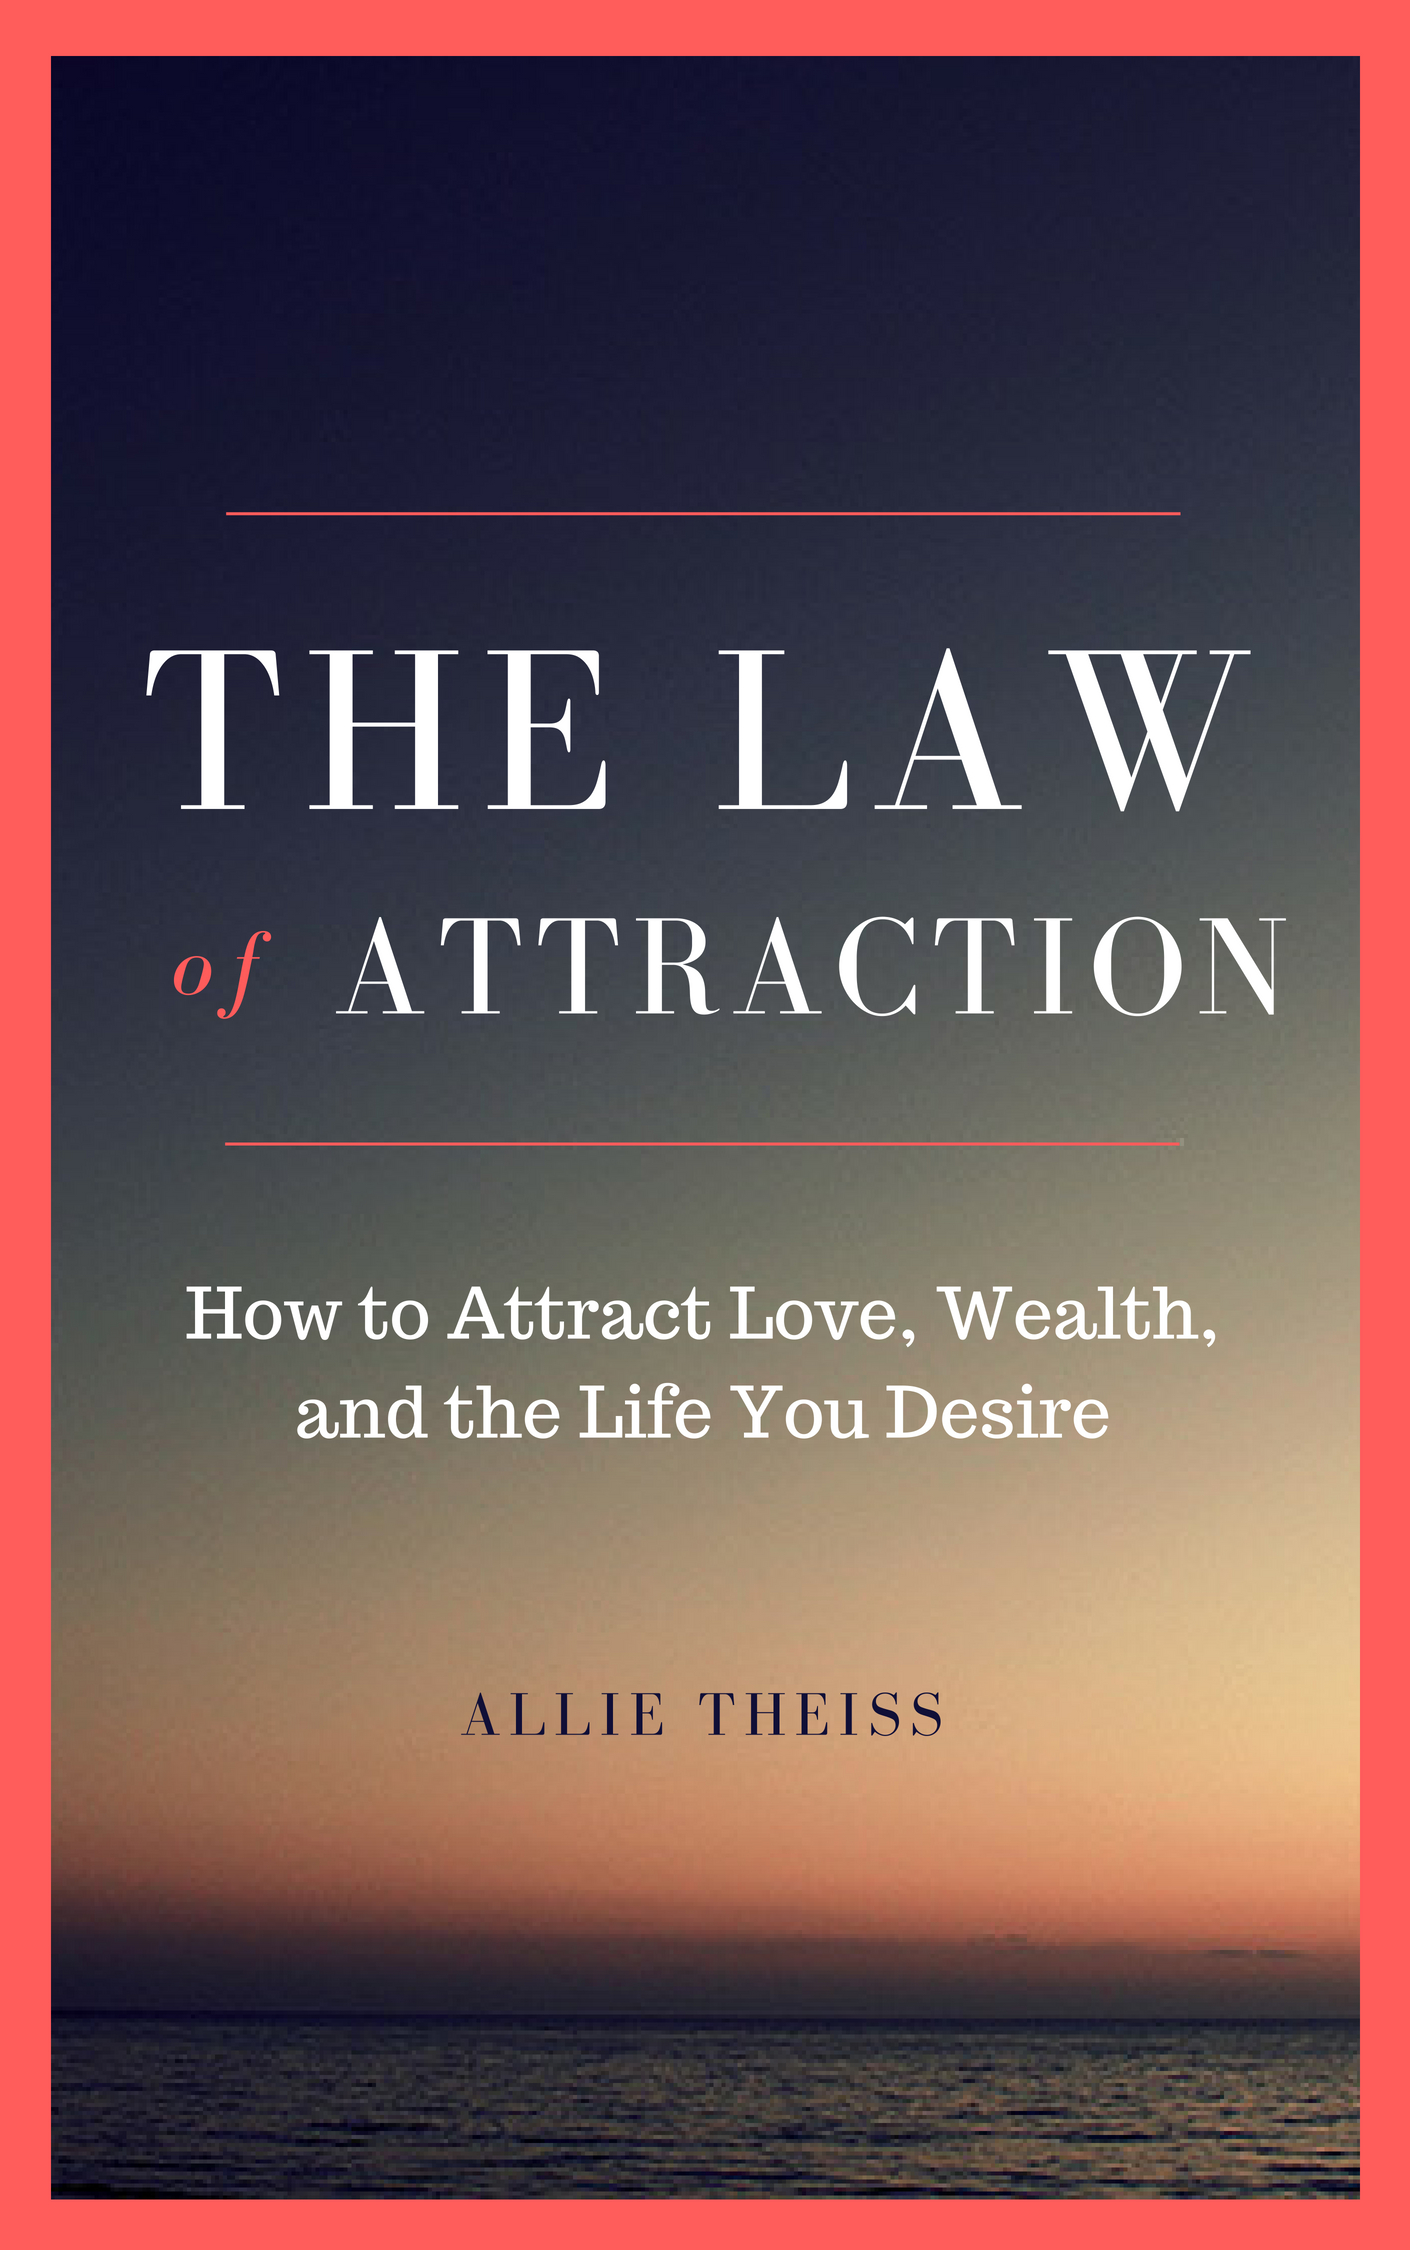 Law of Attraction Bundle: Guide + MP3 + Workbook